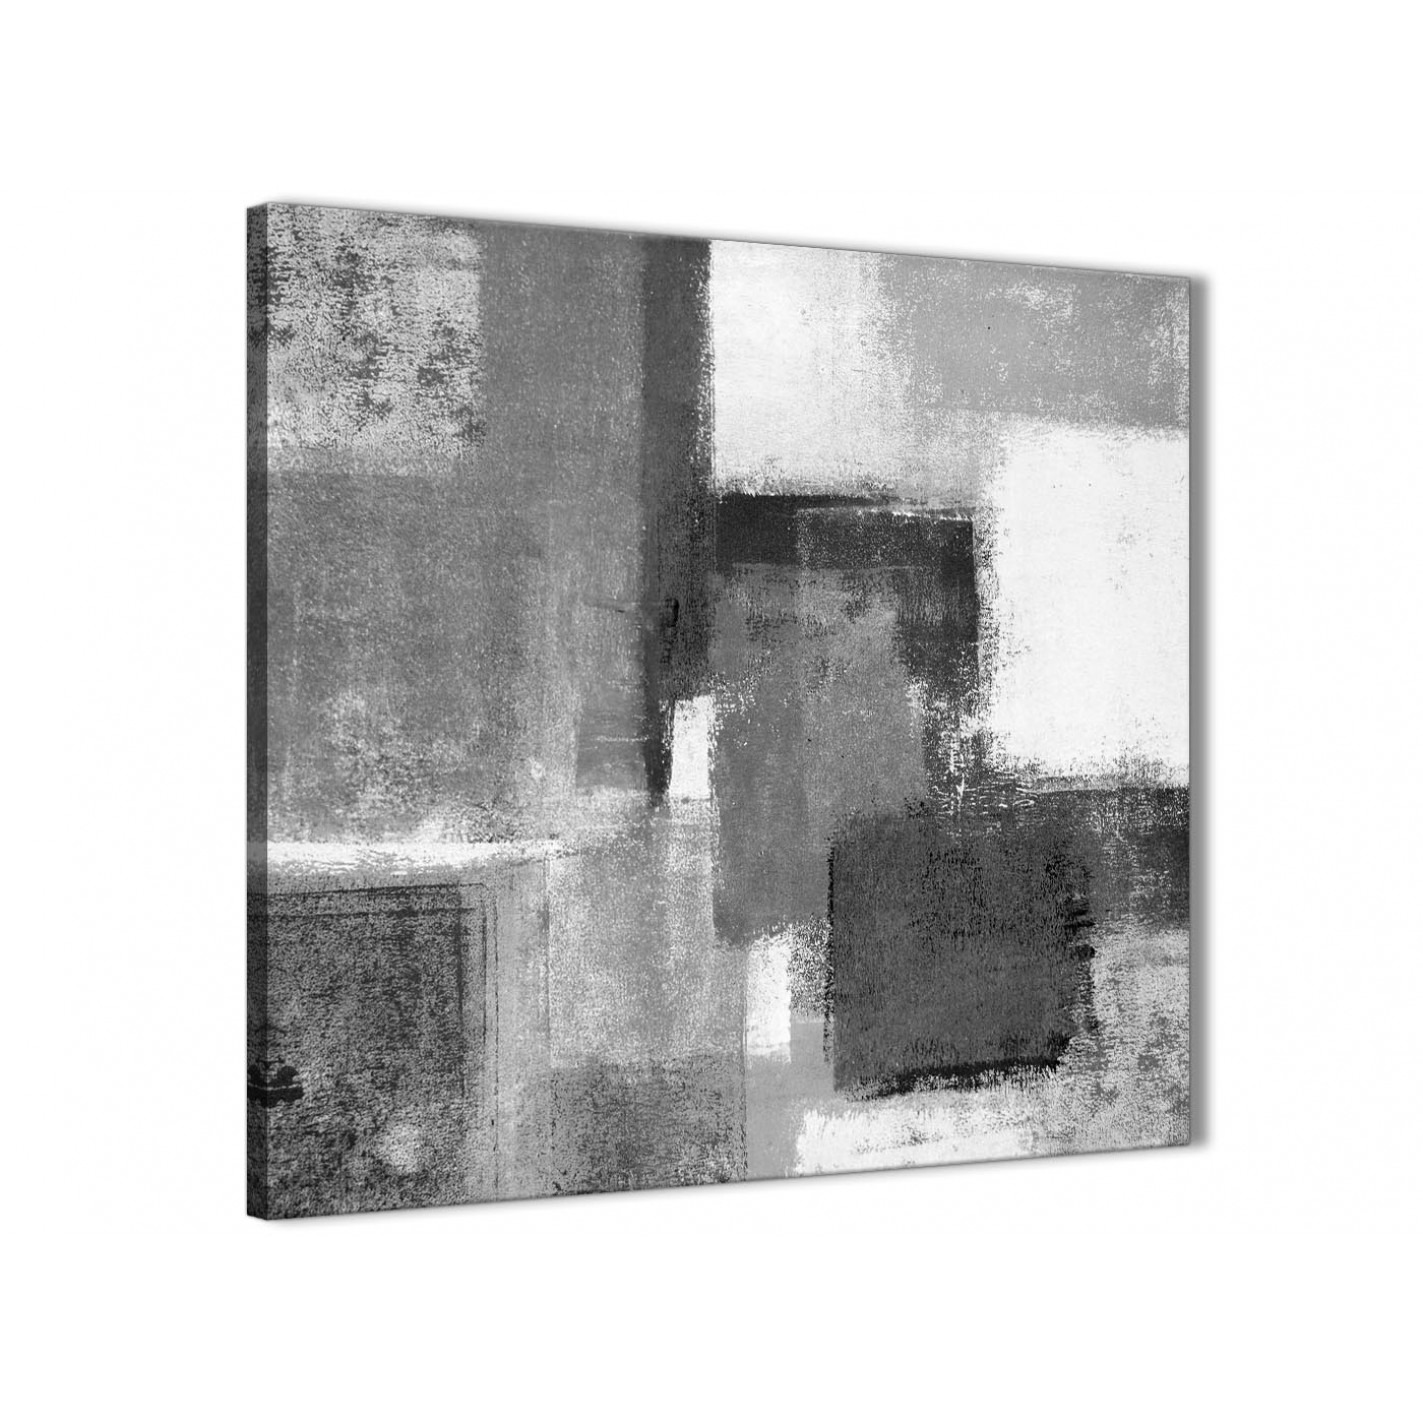 Cheap black white grey kitchen canvas wall art accessories abstract 1s368s 49cm square print display gallery item 1